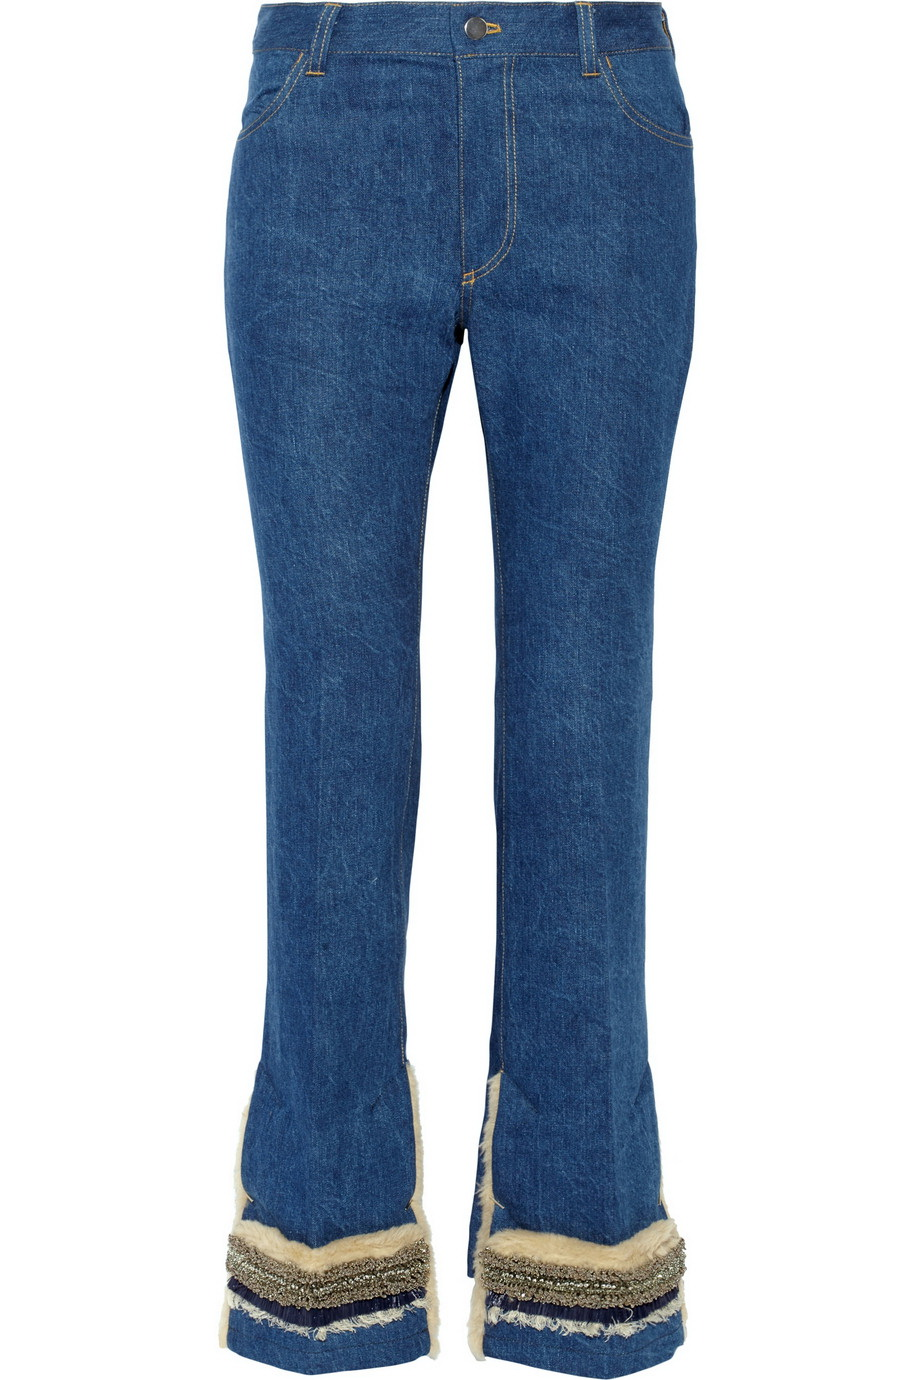 The Best Flared Jeans Outfit Ideas 2019 Become Chic